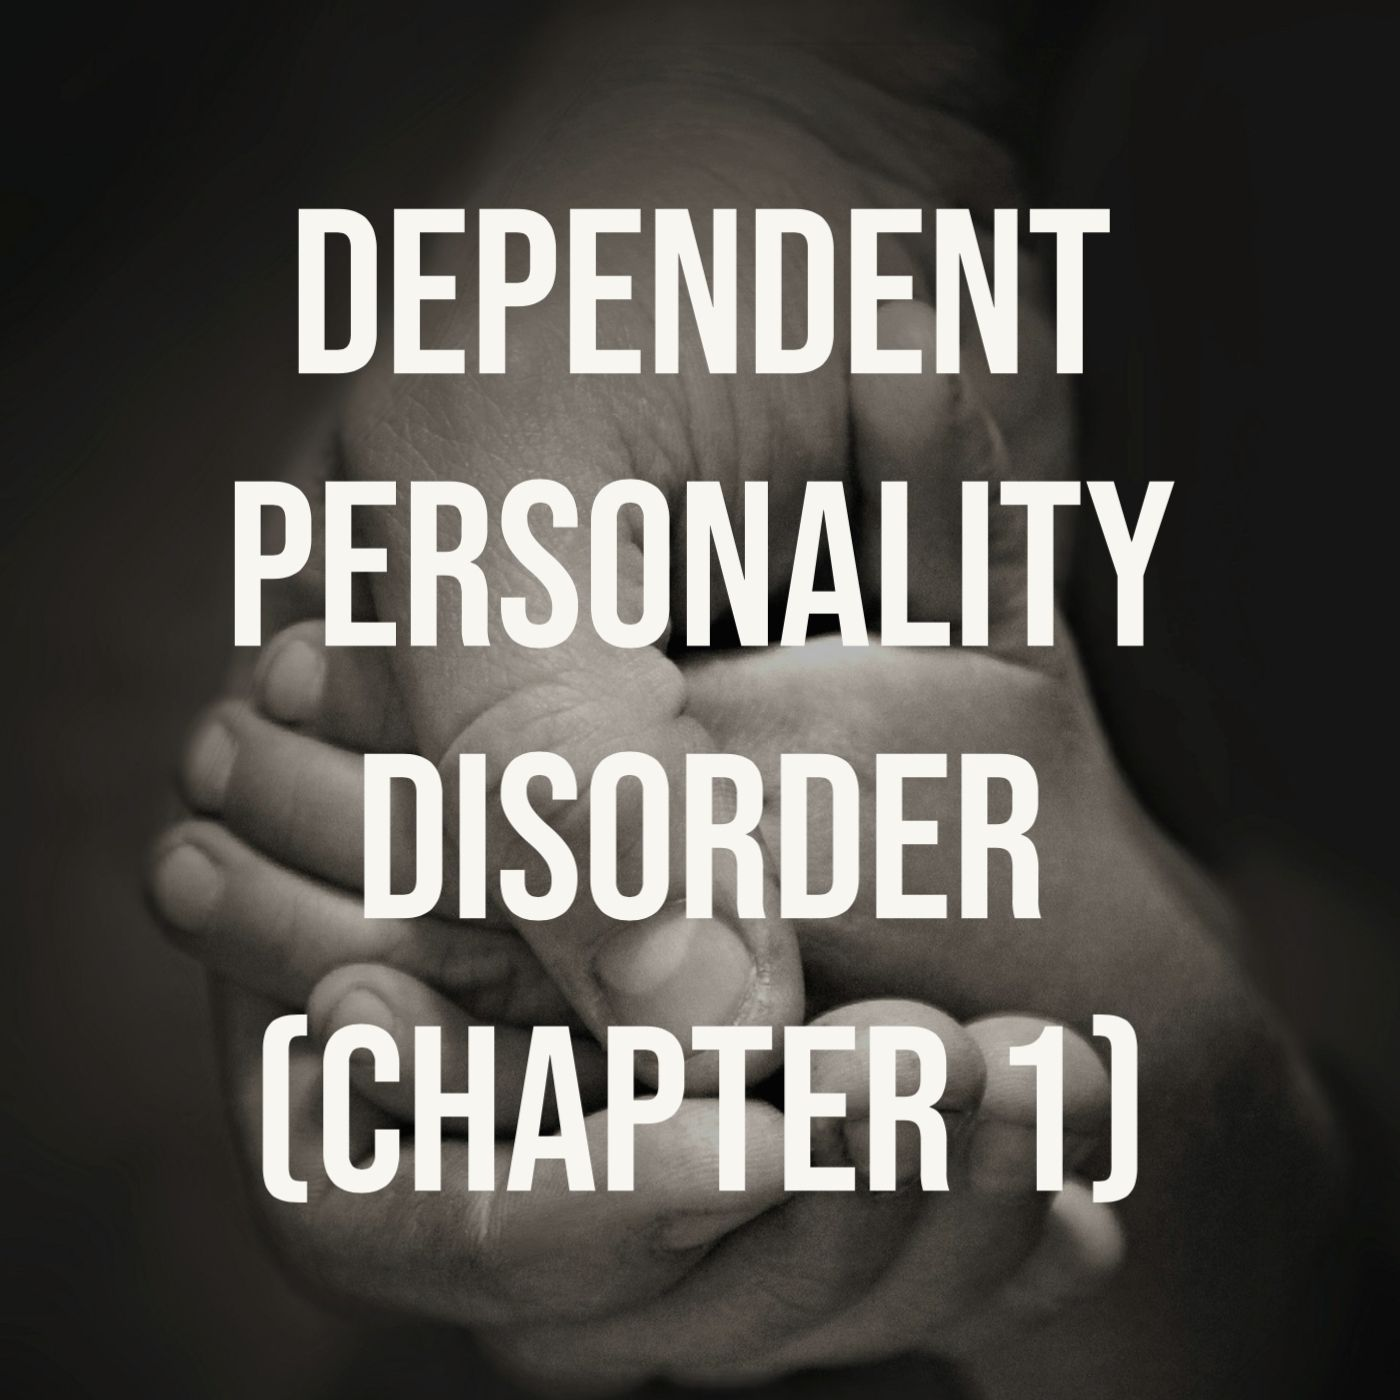 Dependent Personality Disorder - (Chapter 1)